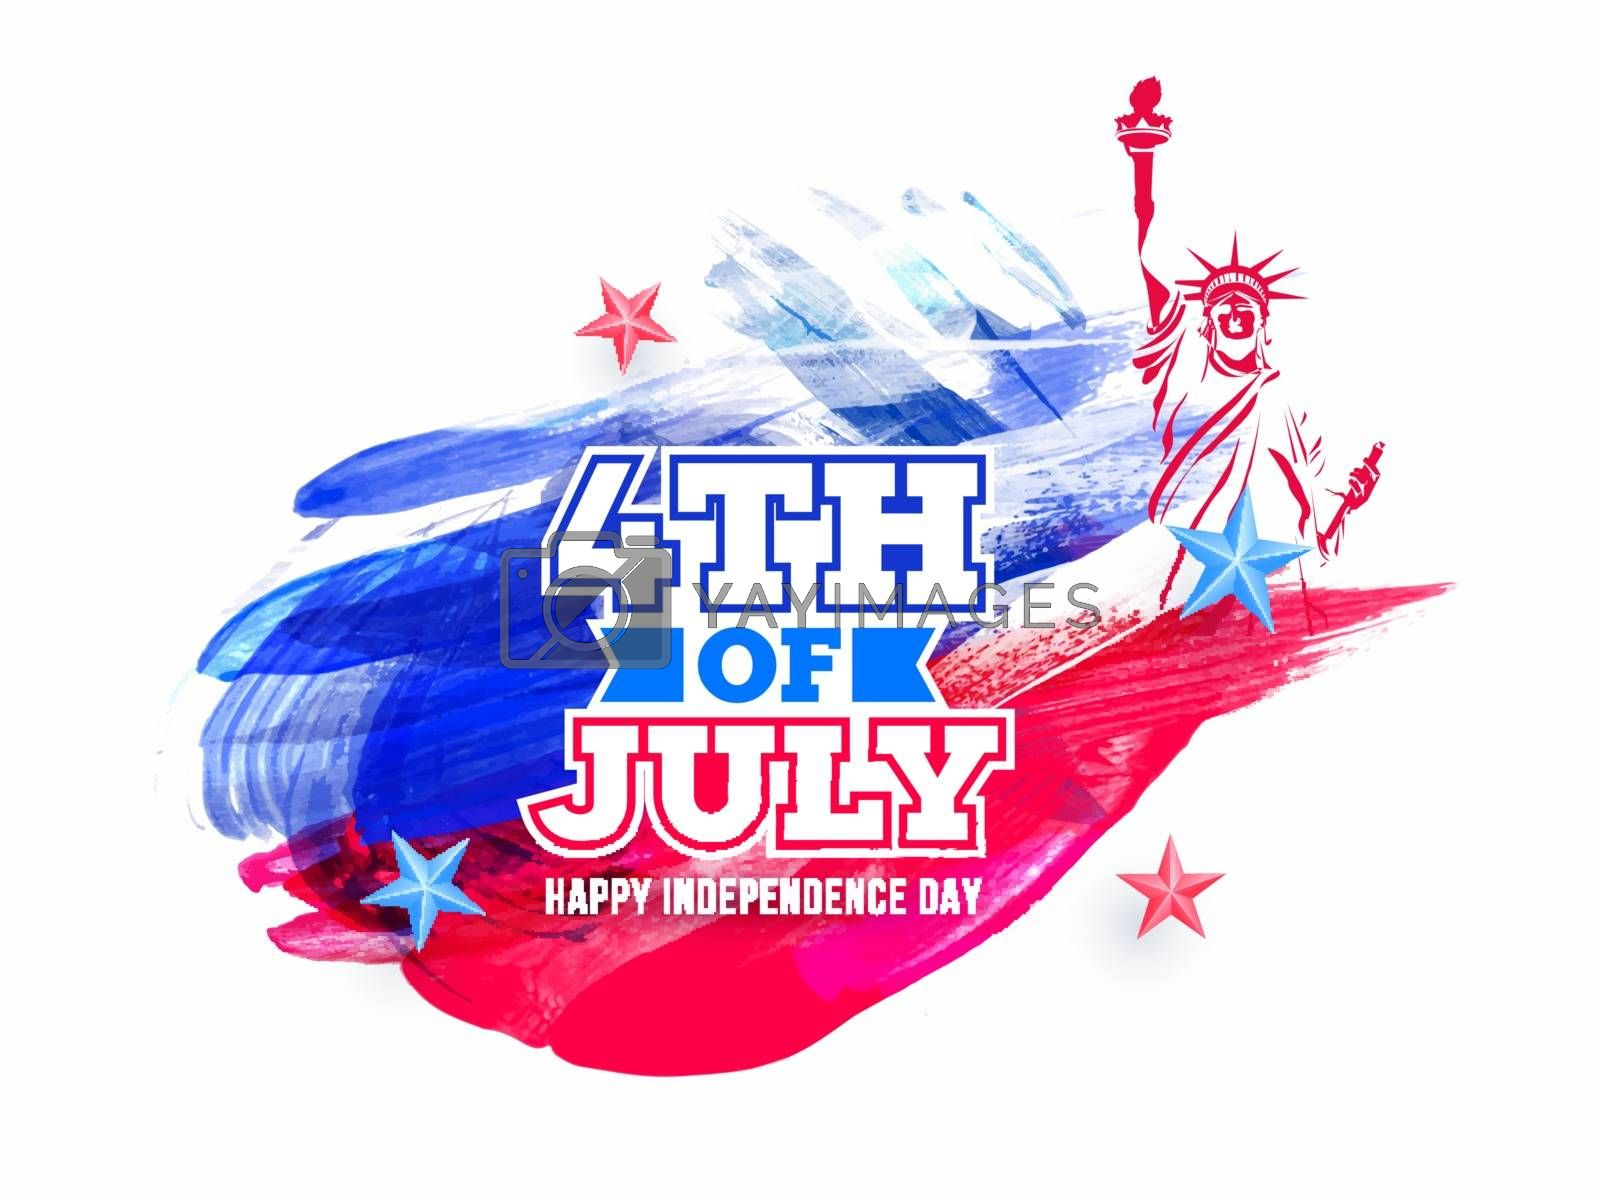 Sticker style text 4th Of July and Statue of liberty on brush stroke background for Happy Independence Day celebration concept.